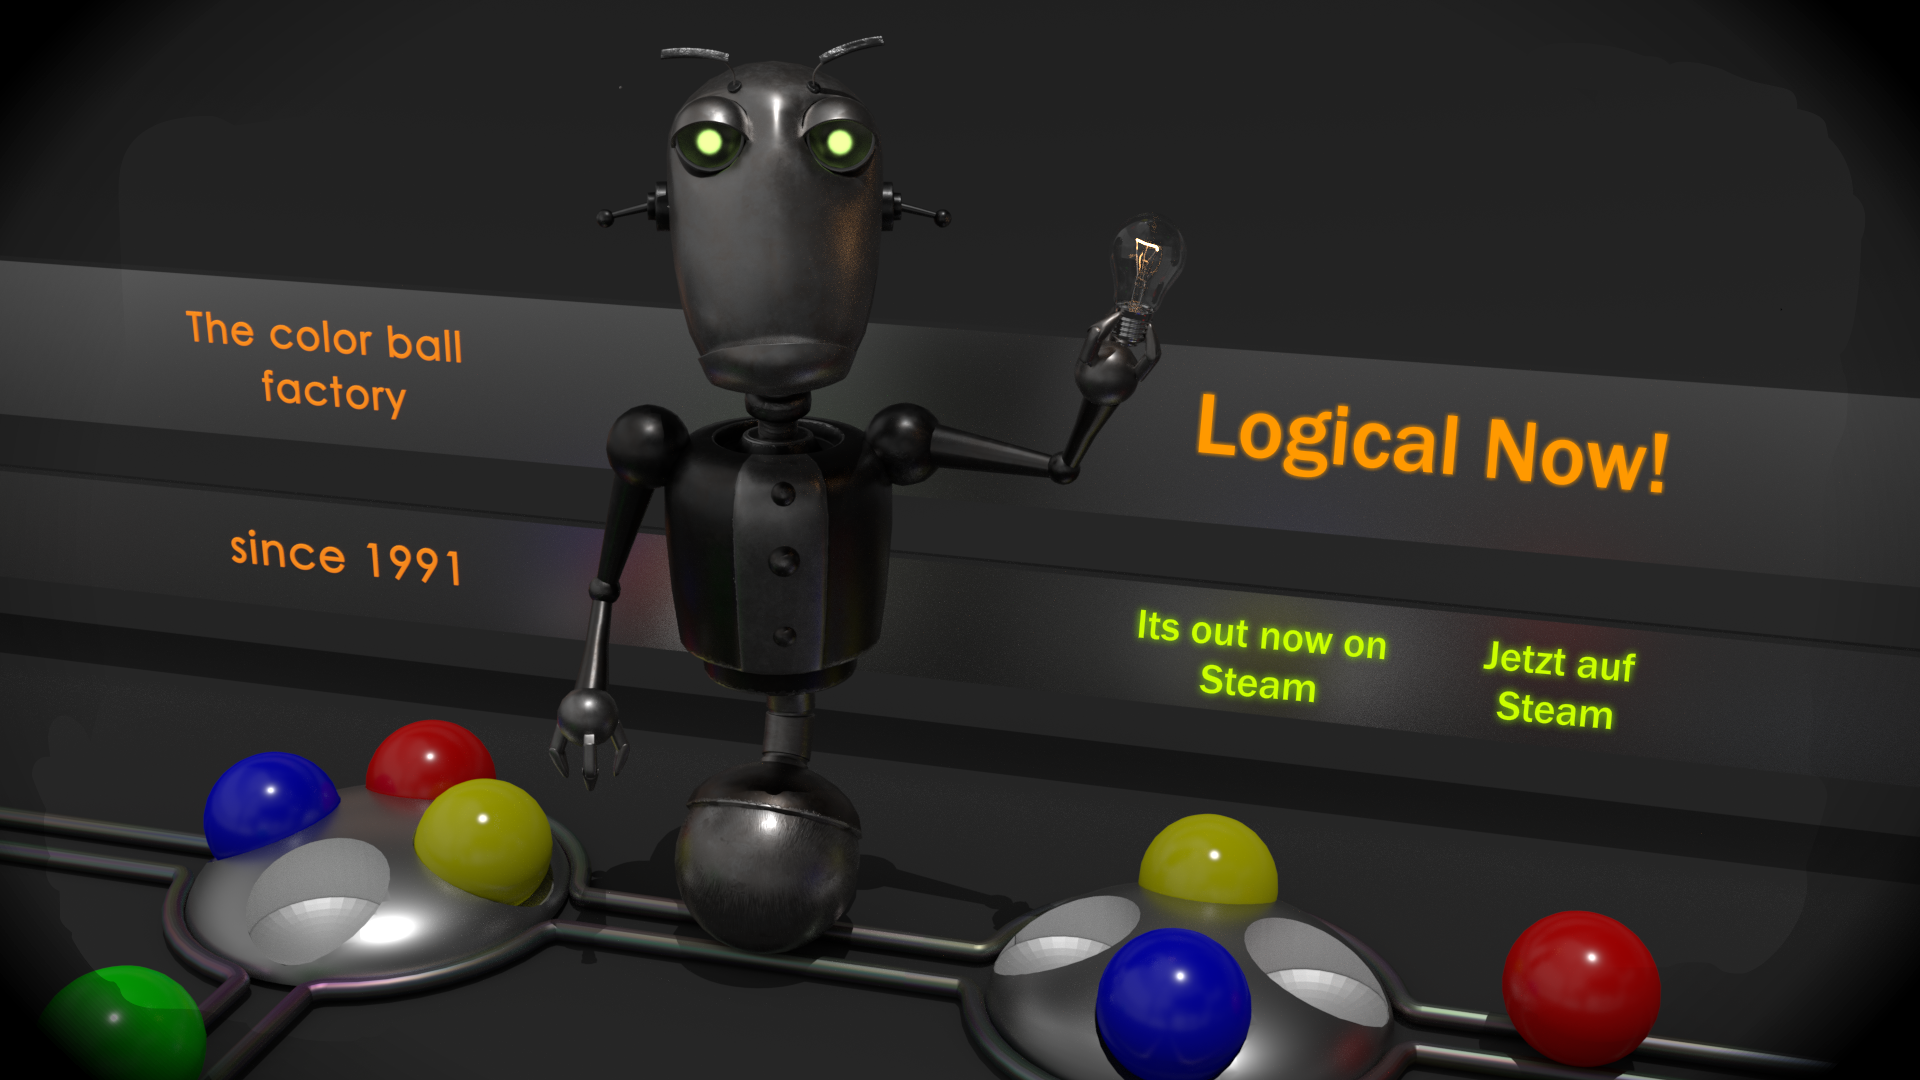 logical now! - coming soon!